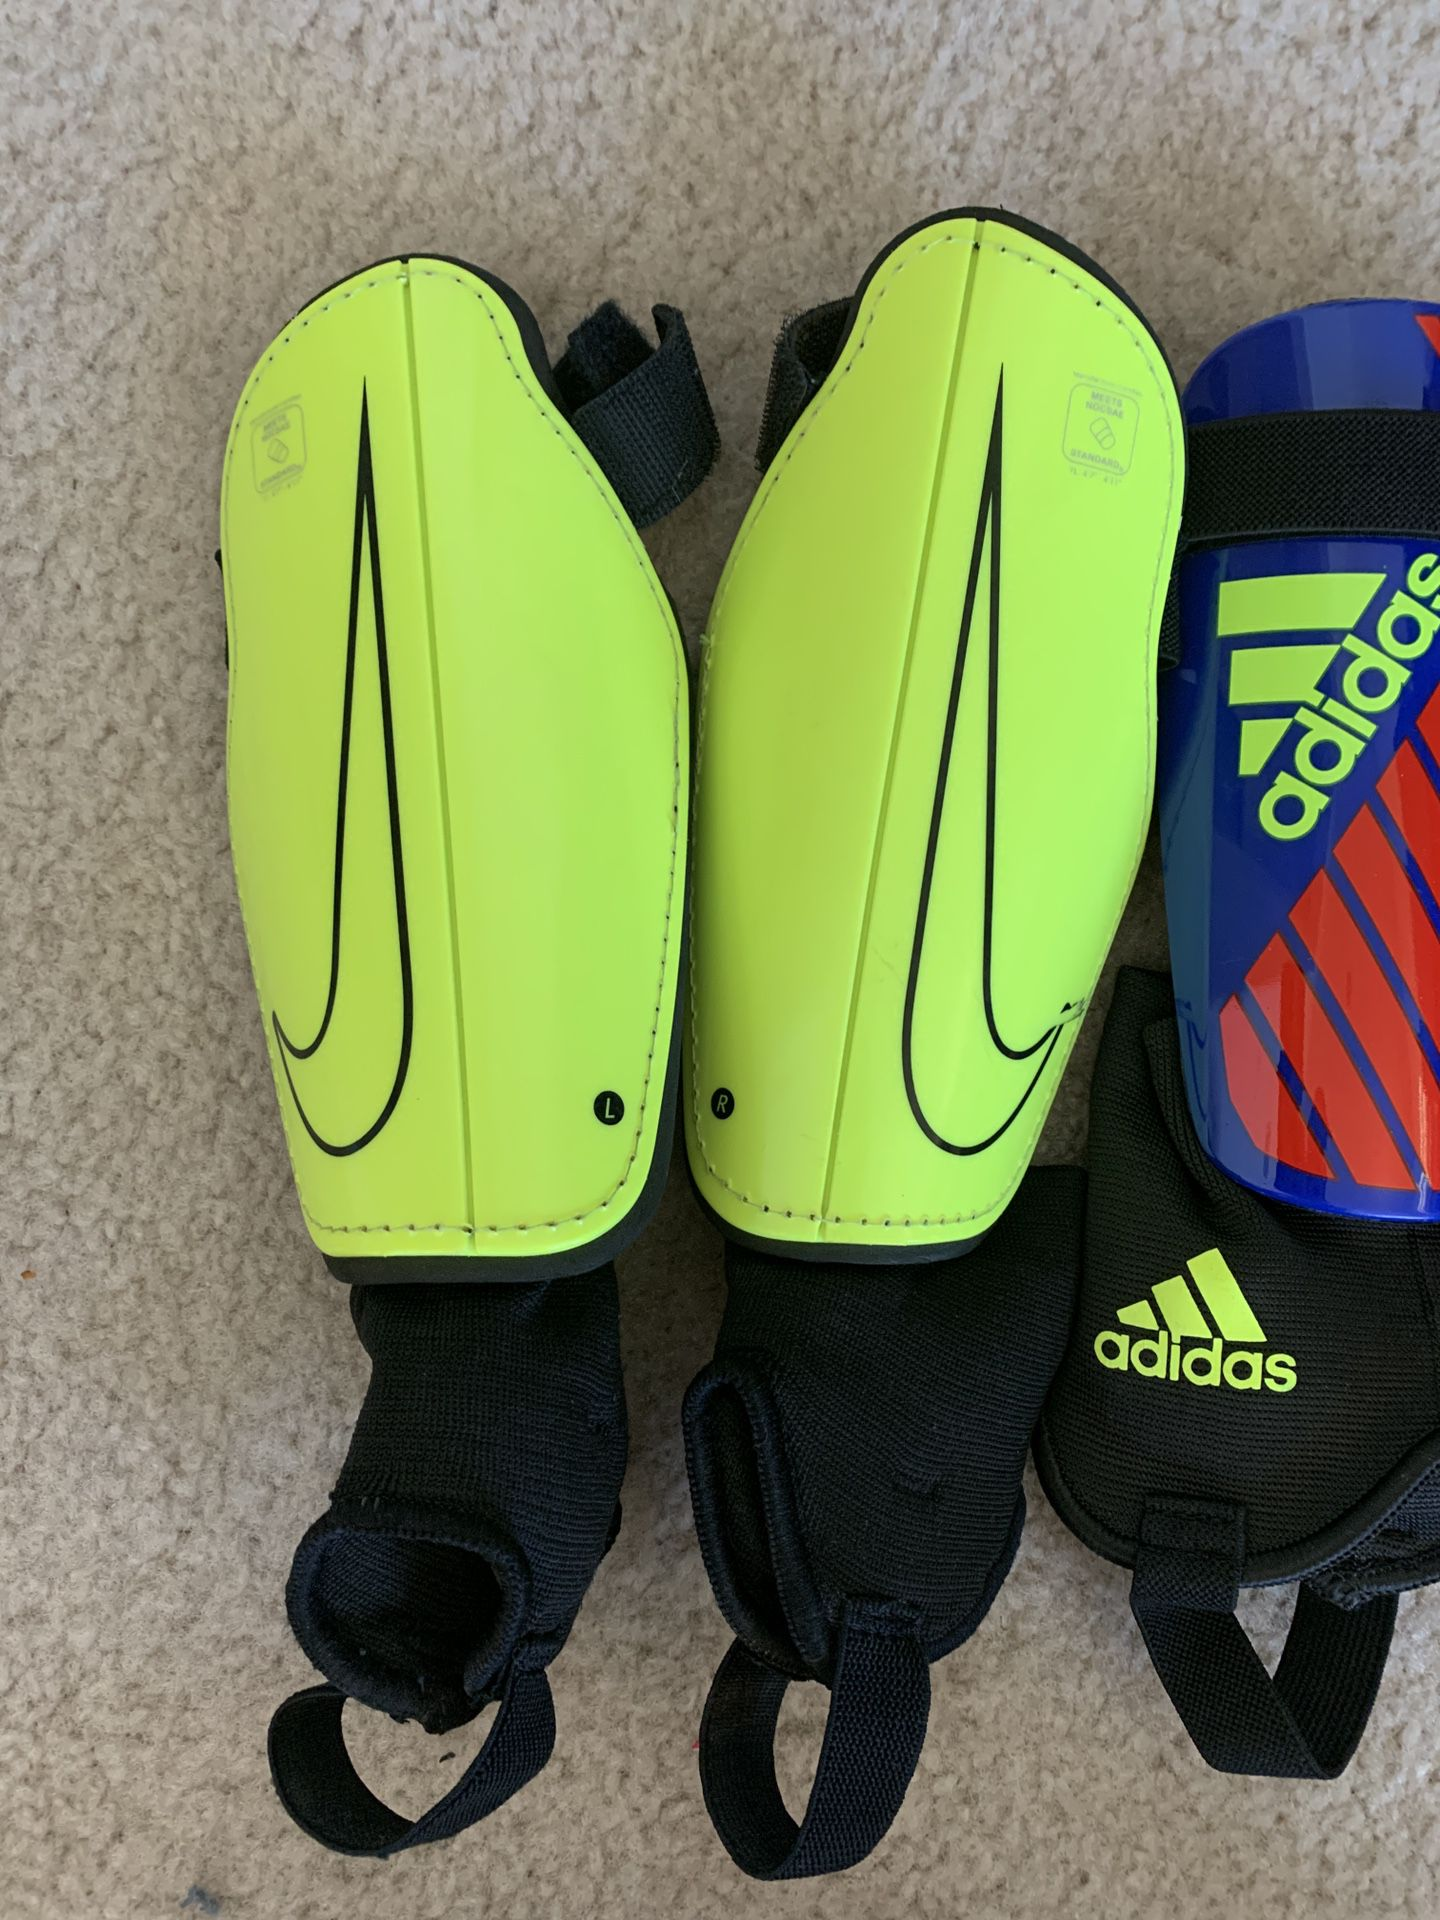 3 Pair of Shin Guards - Size Med & LG